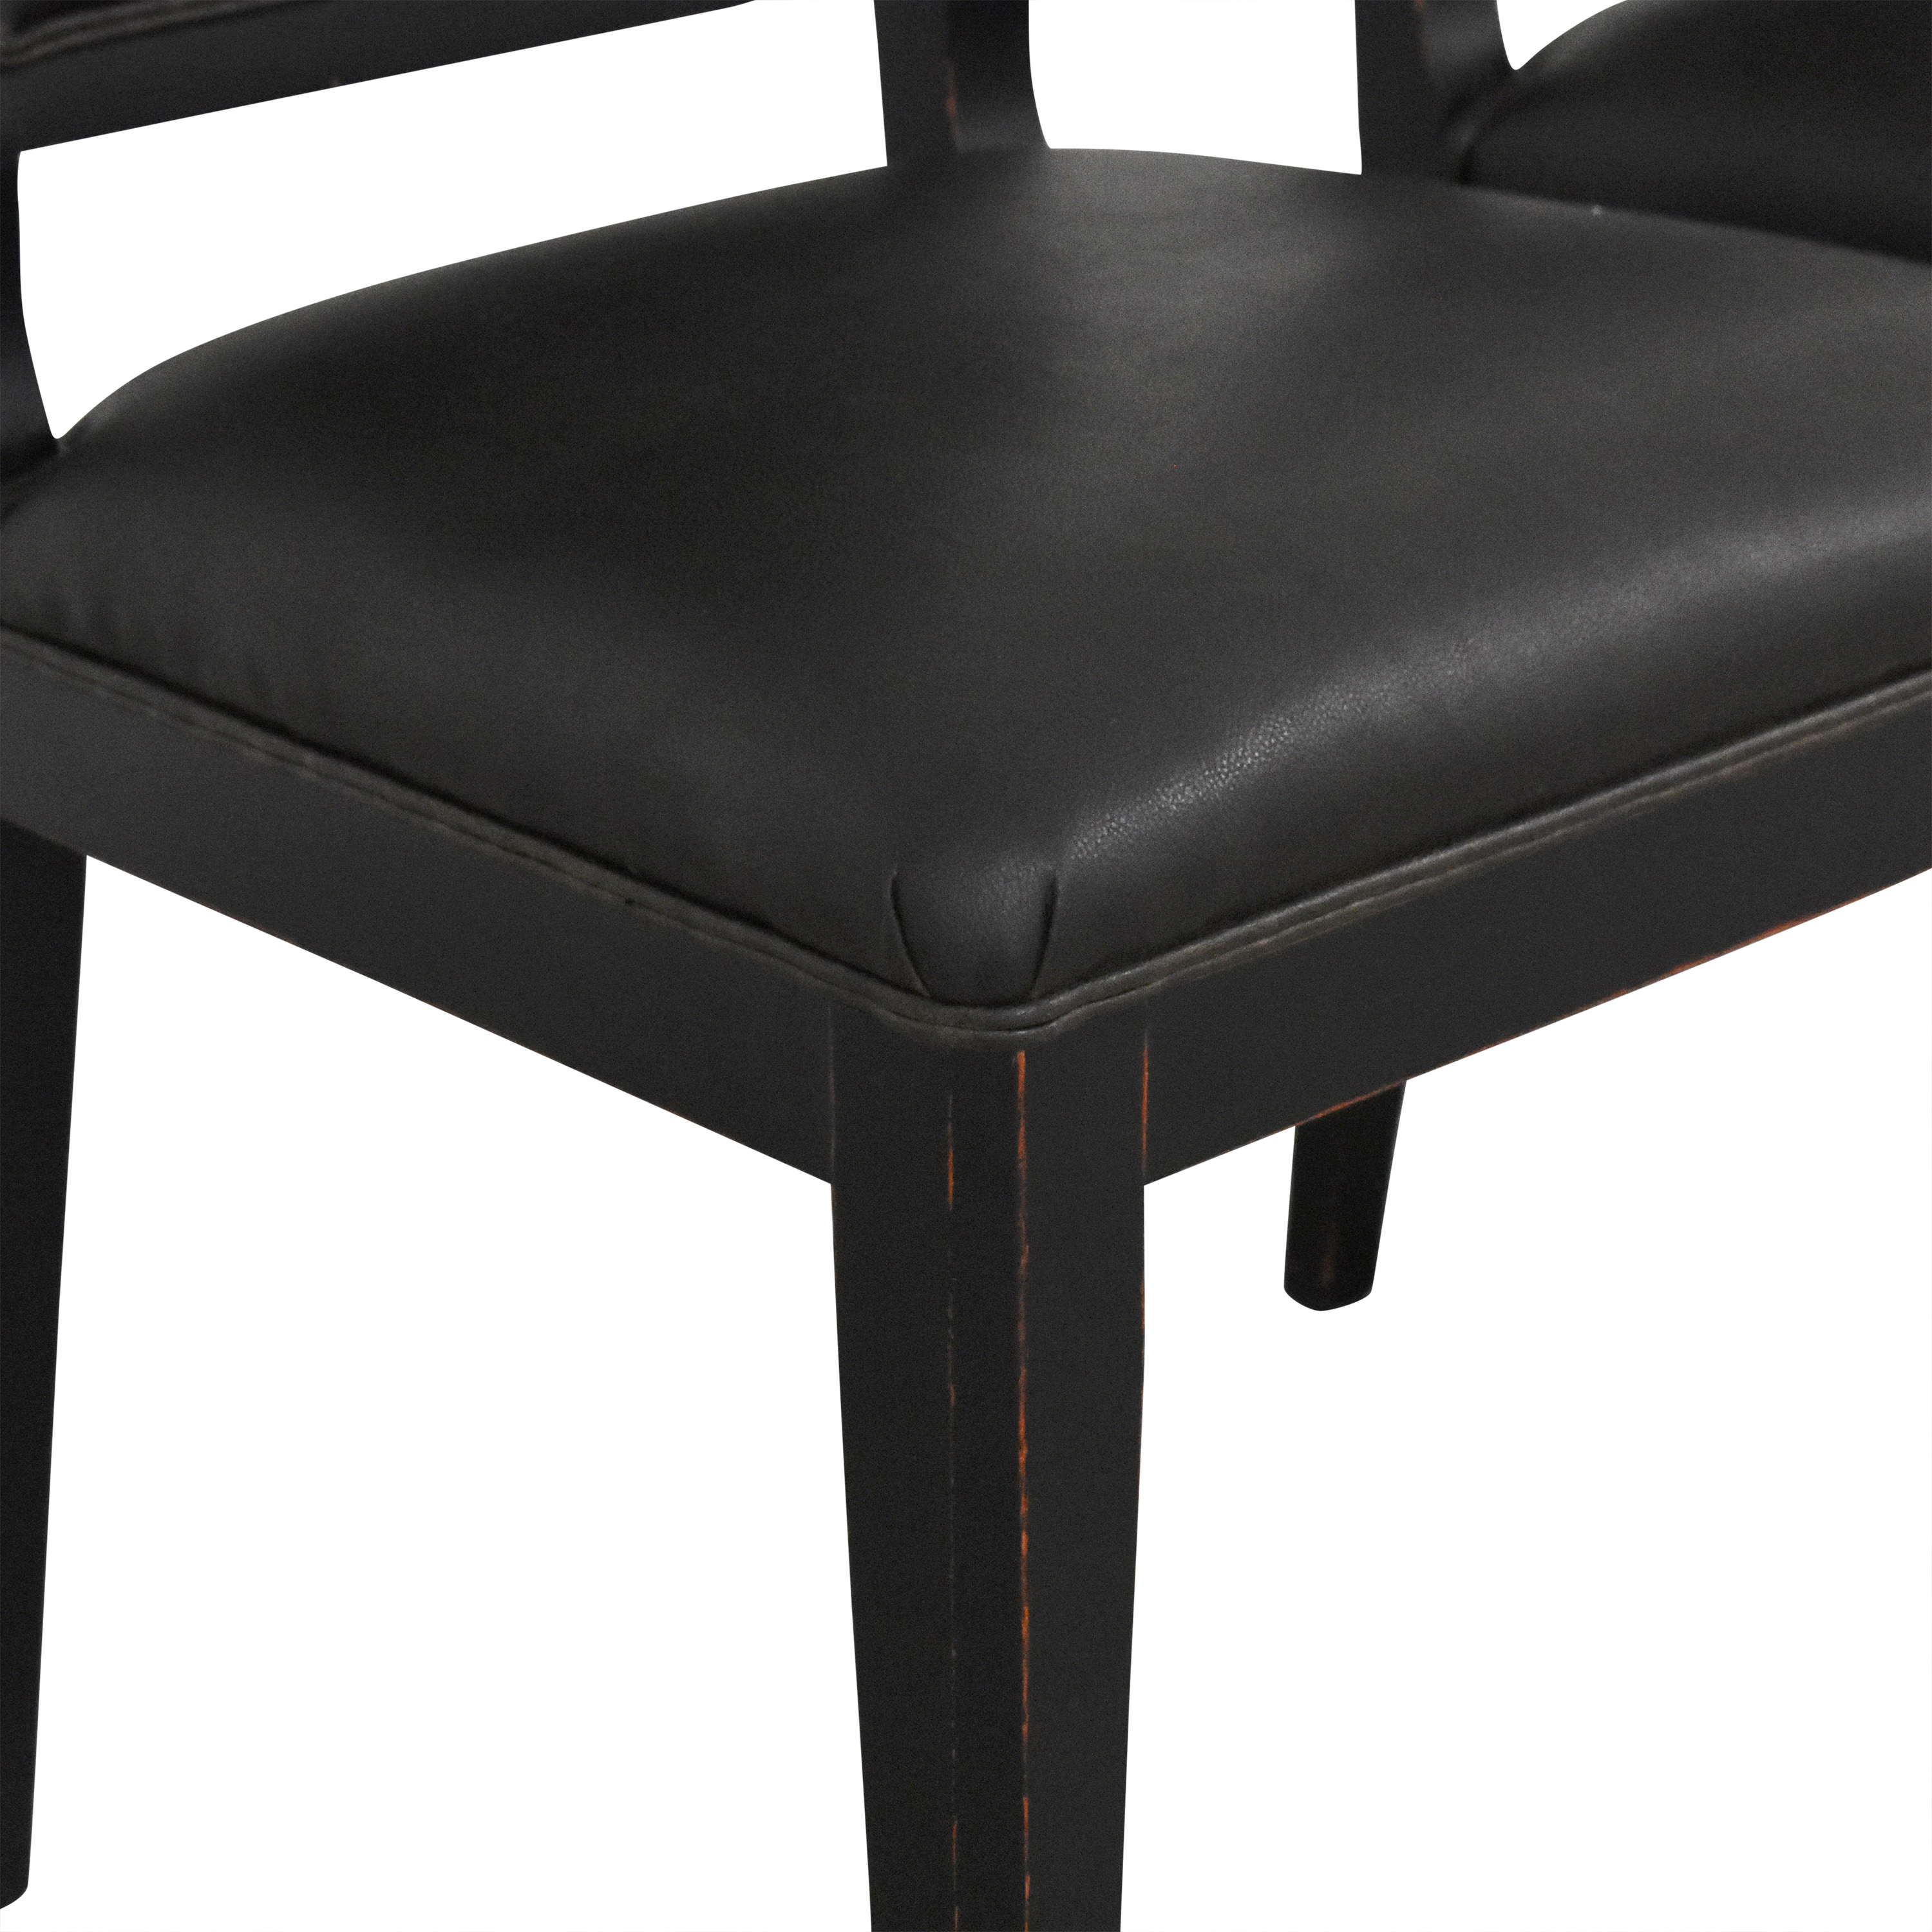 Crate & Barrel Crate & Barrel High Back Dining Chairs coupon